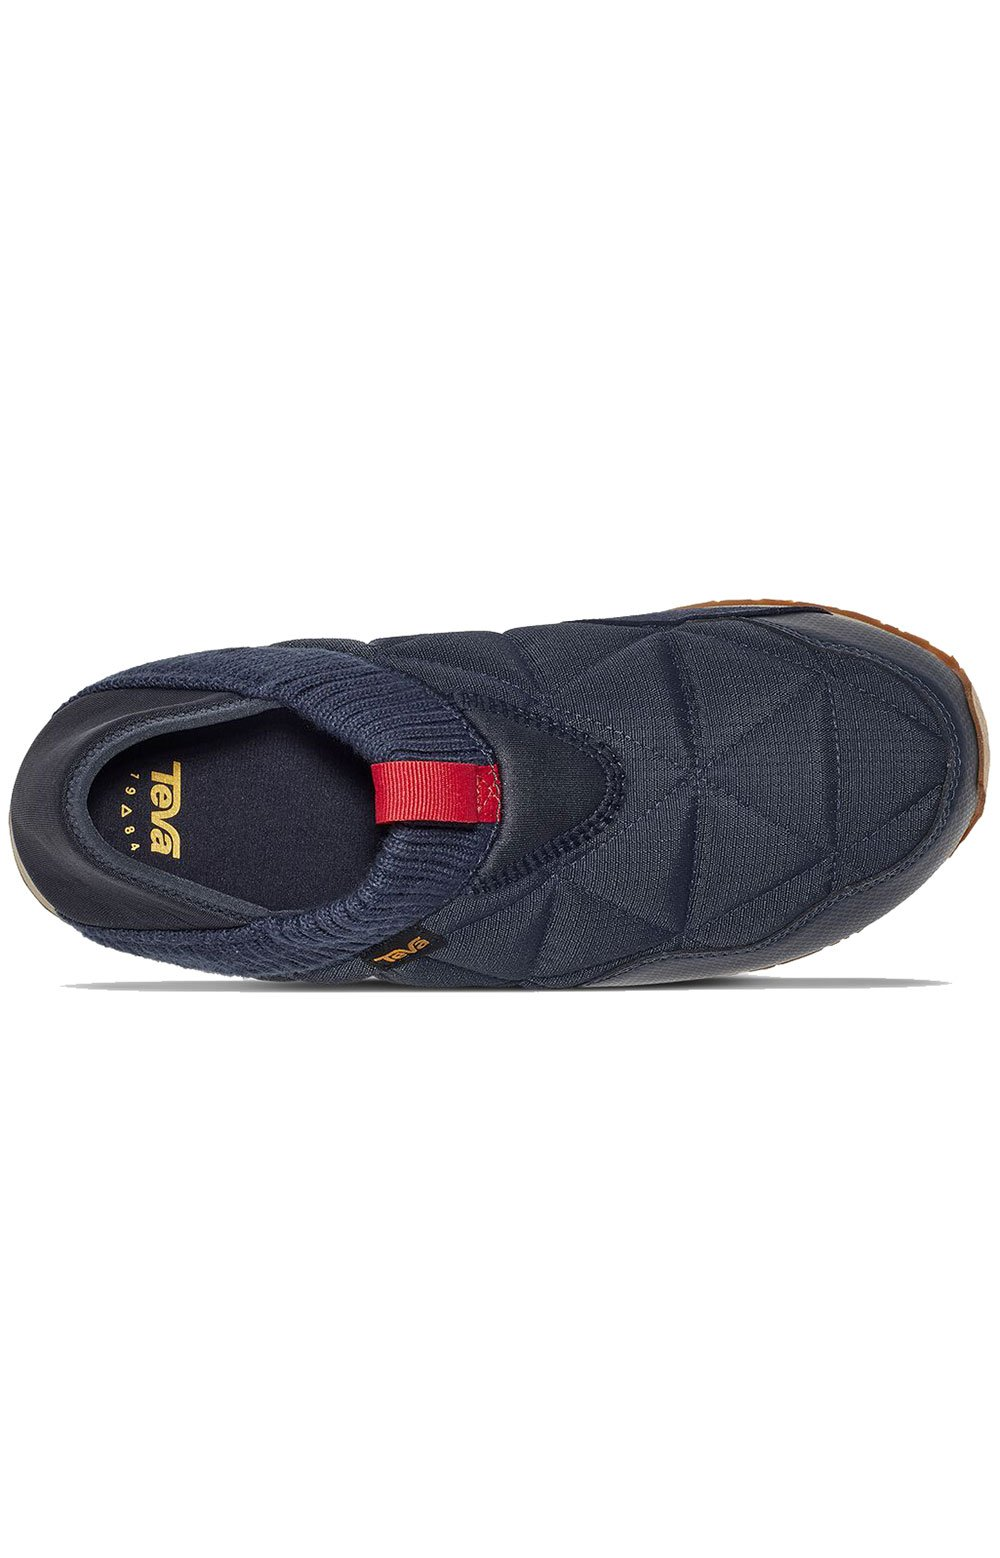 (1125472) ReEMBER Moccasins - Total Eclipse  5